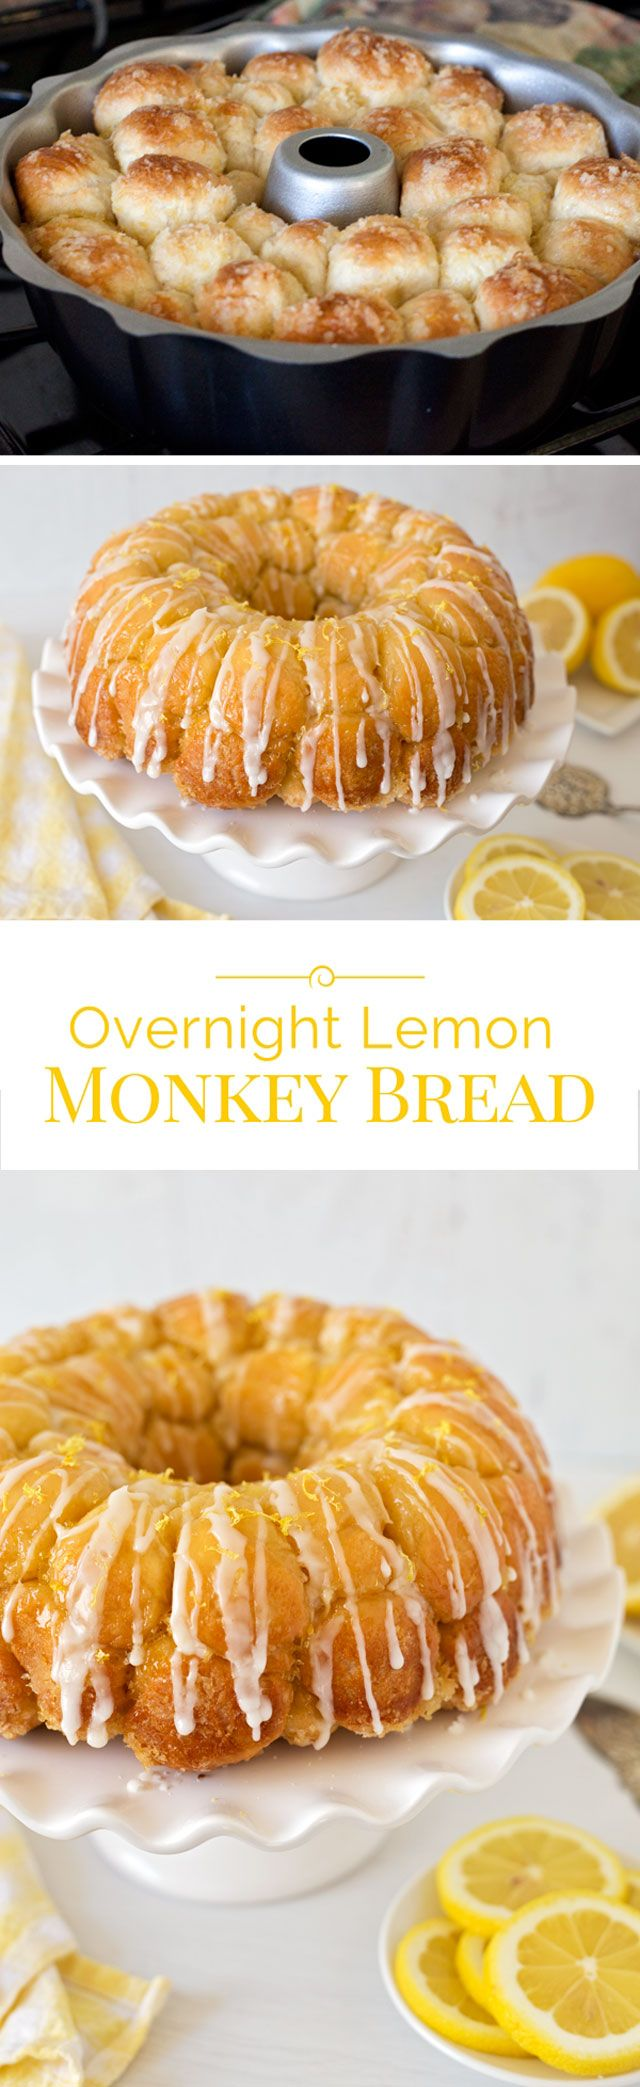 This Overnight Lemon Monkey Bread is a lemon lovers dream. Every little bite of this luscious lemon bread is coated in a sweet tart lemon sugar.